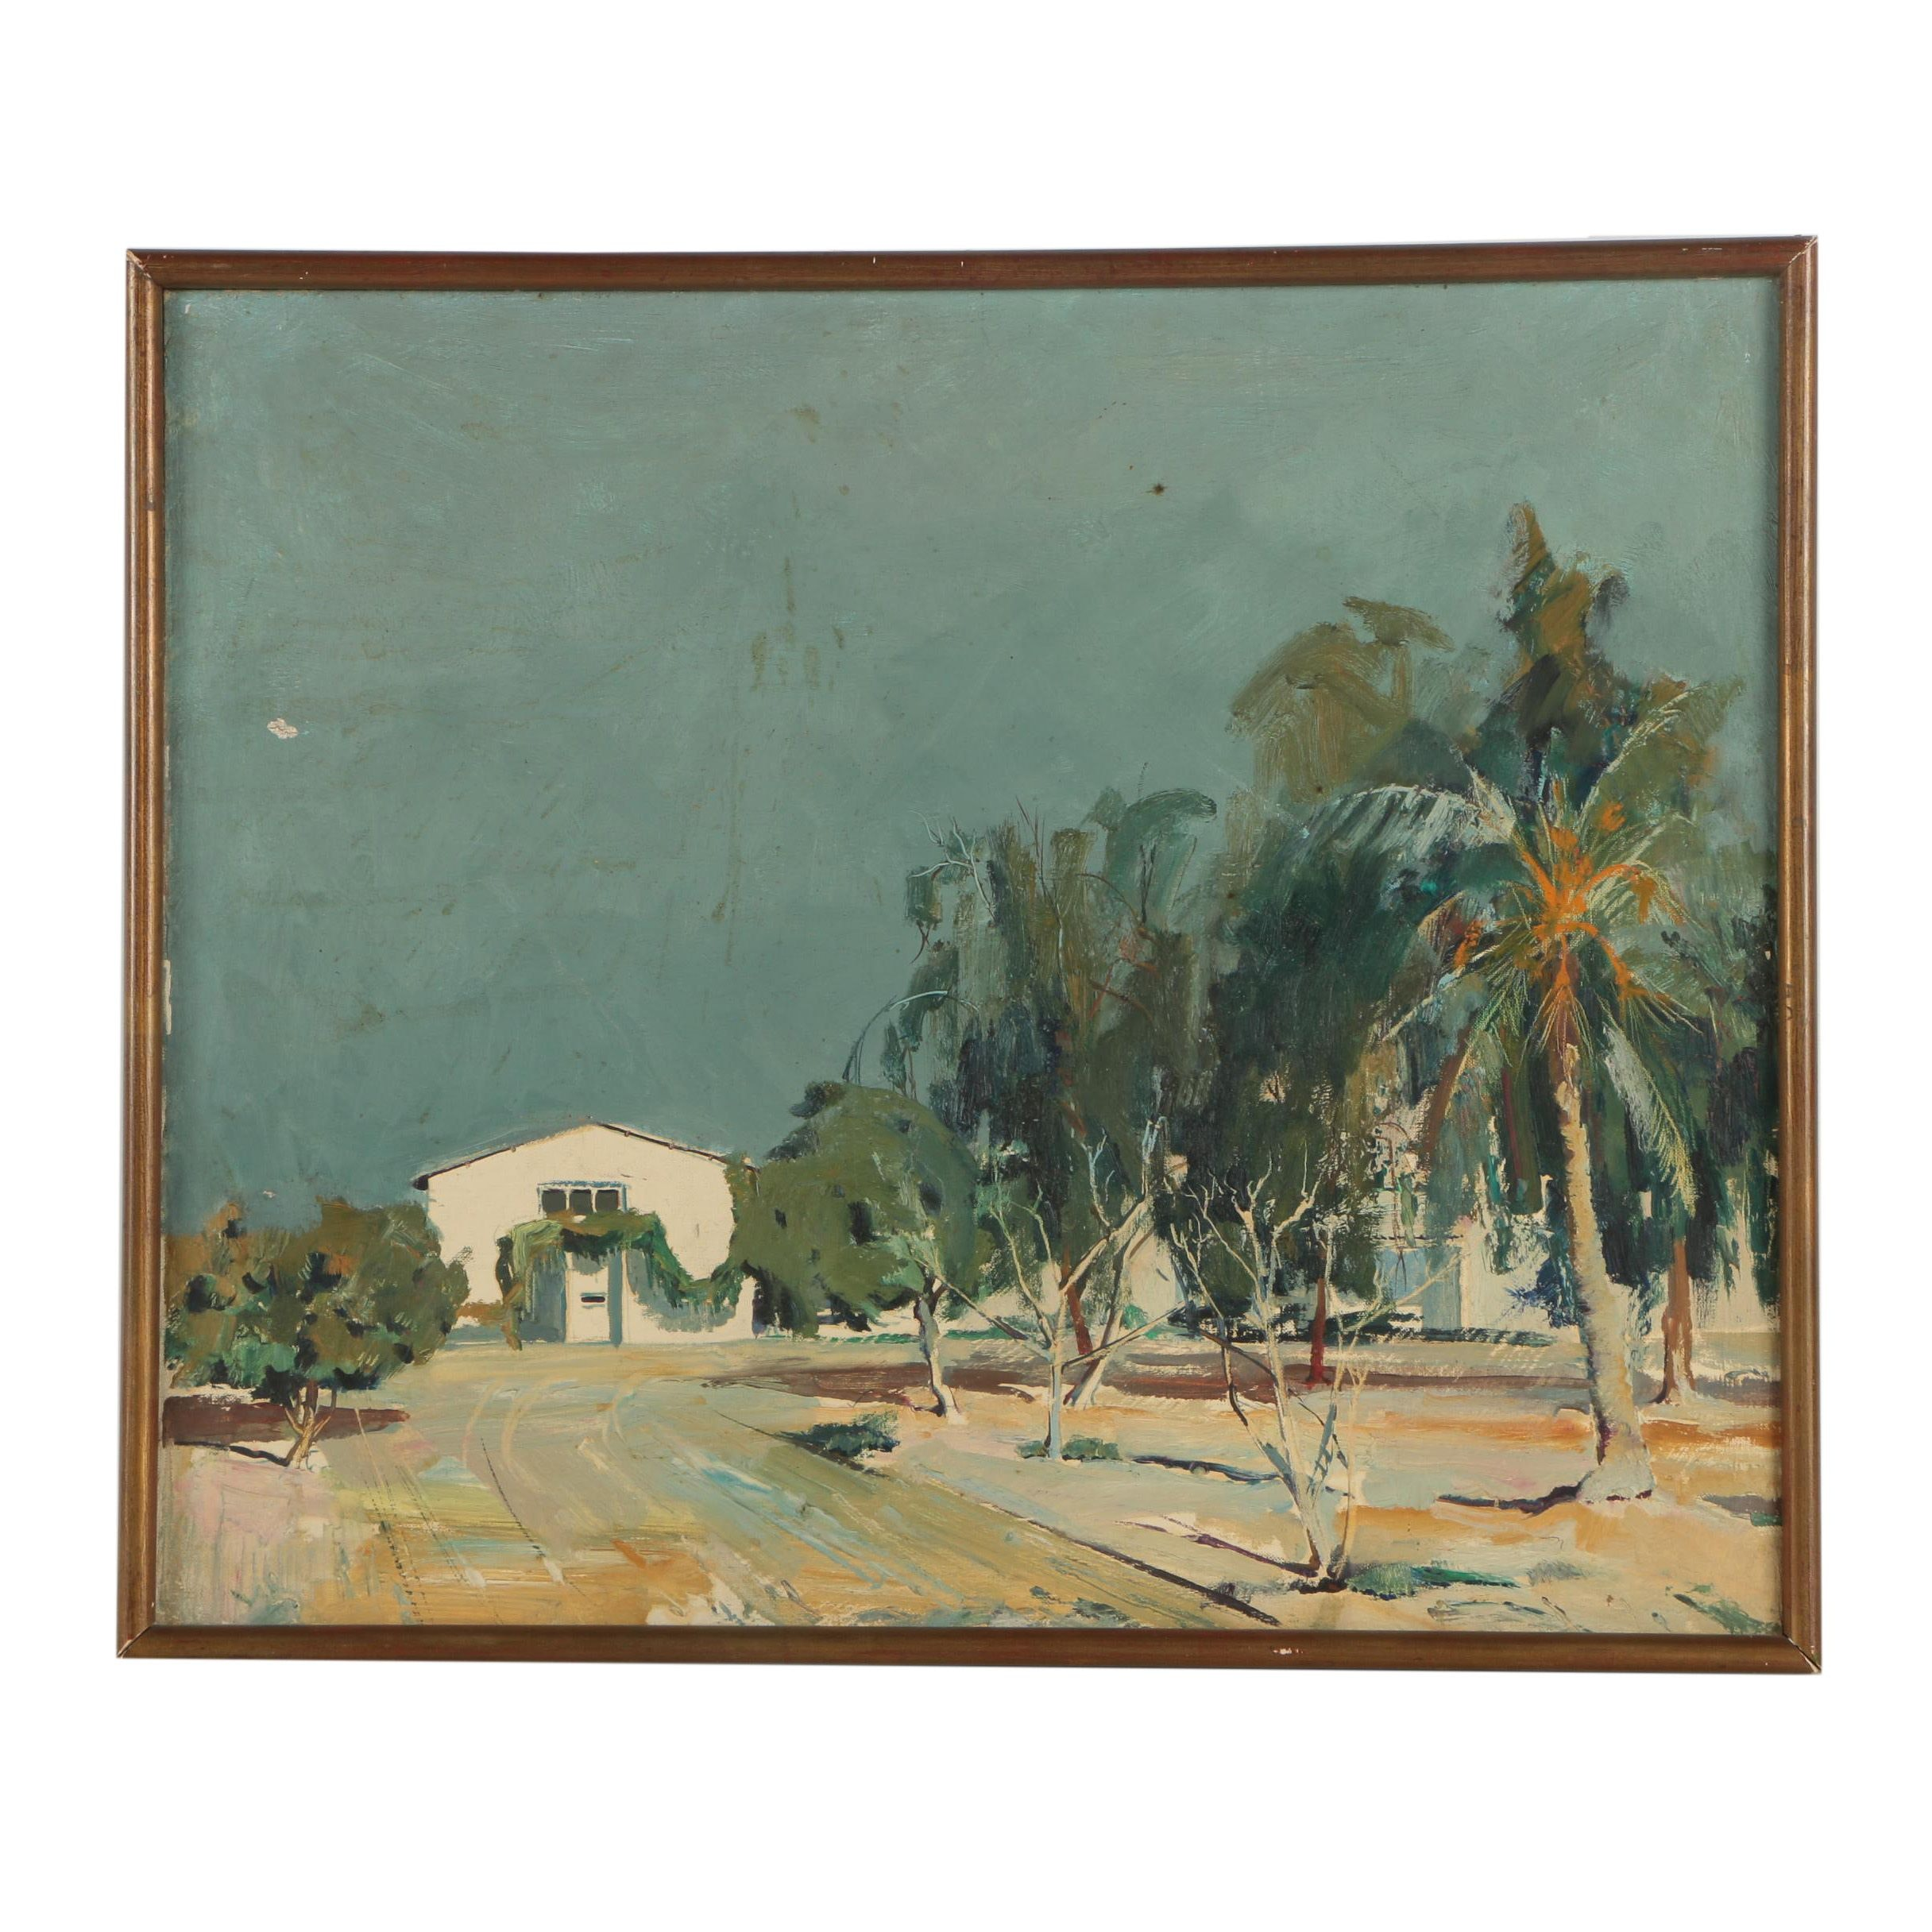 Jacques Rommel French Oil on Painting of a Desert Landscape